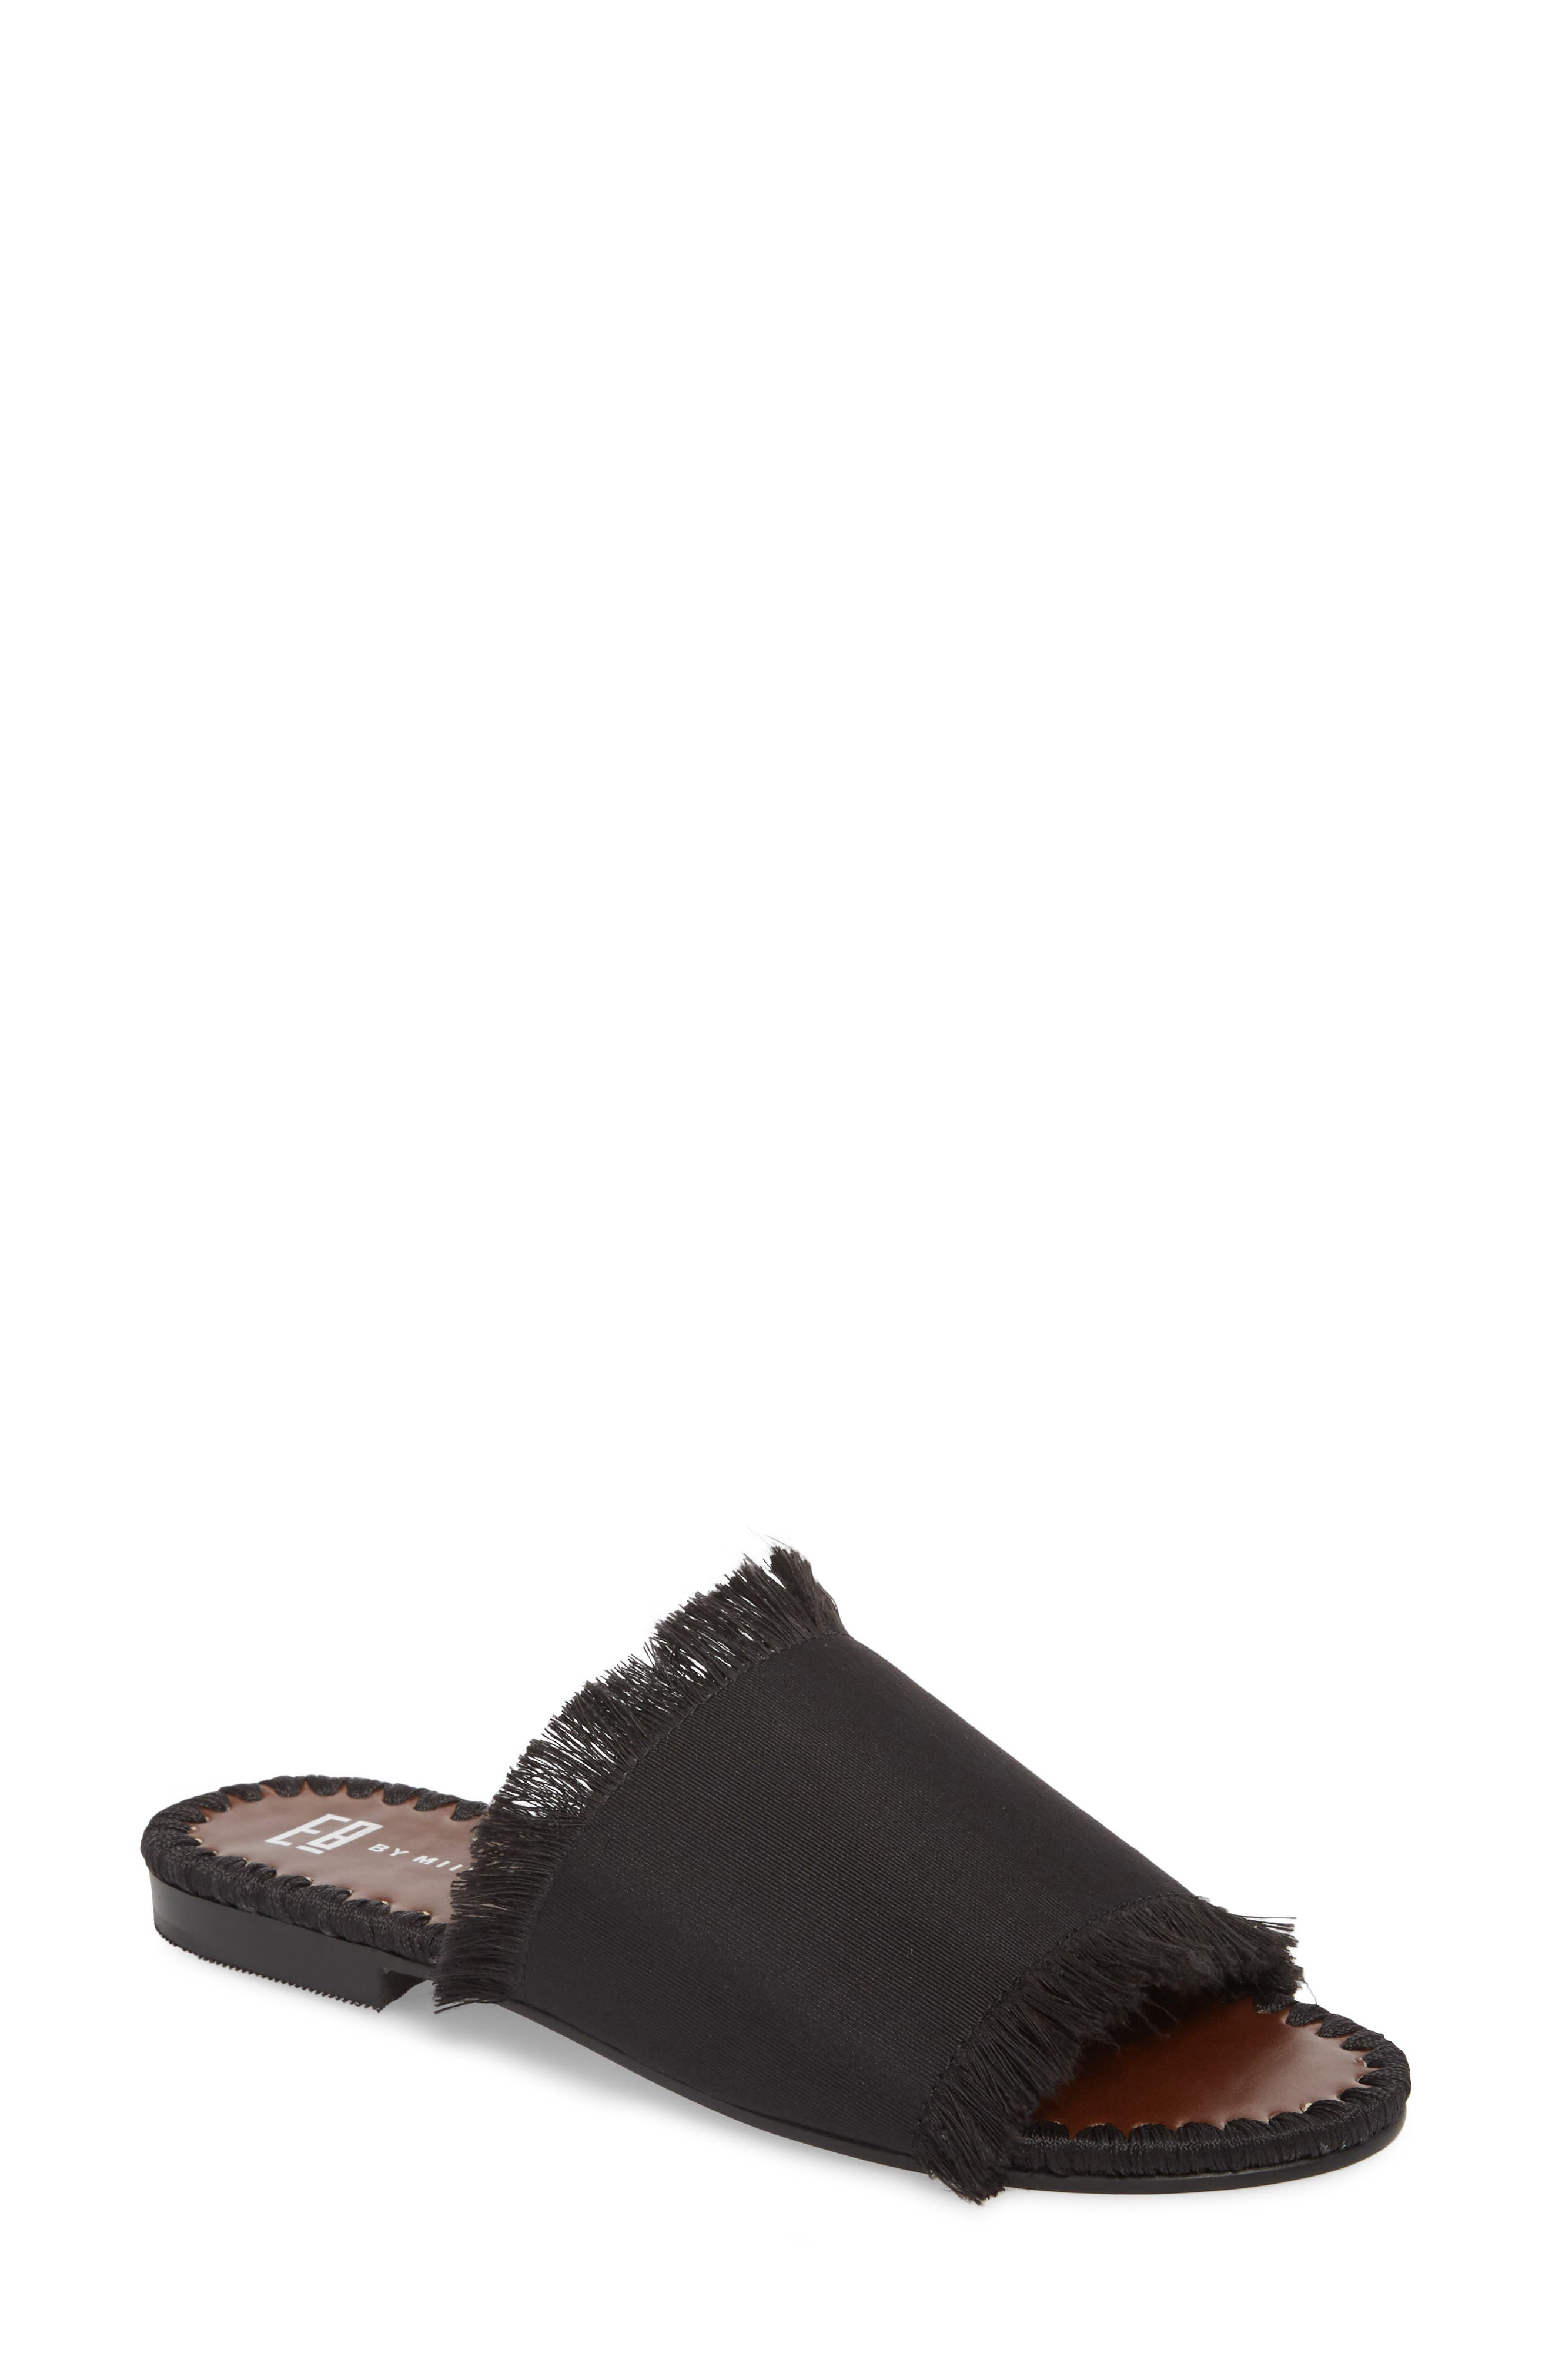 E8 by Miista Tavie Fringed Slide Sandal (Women)